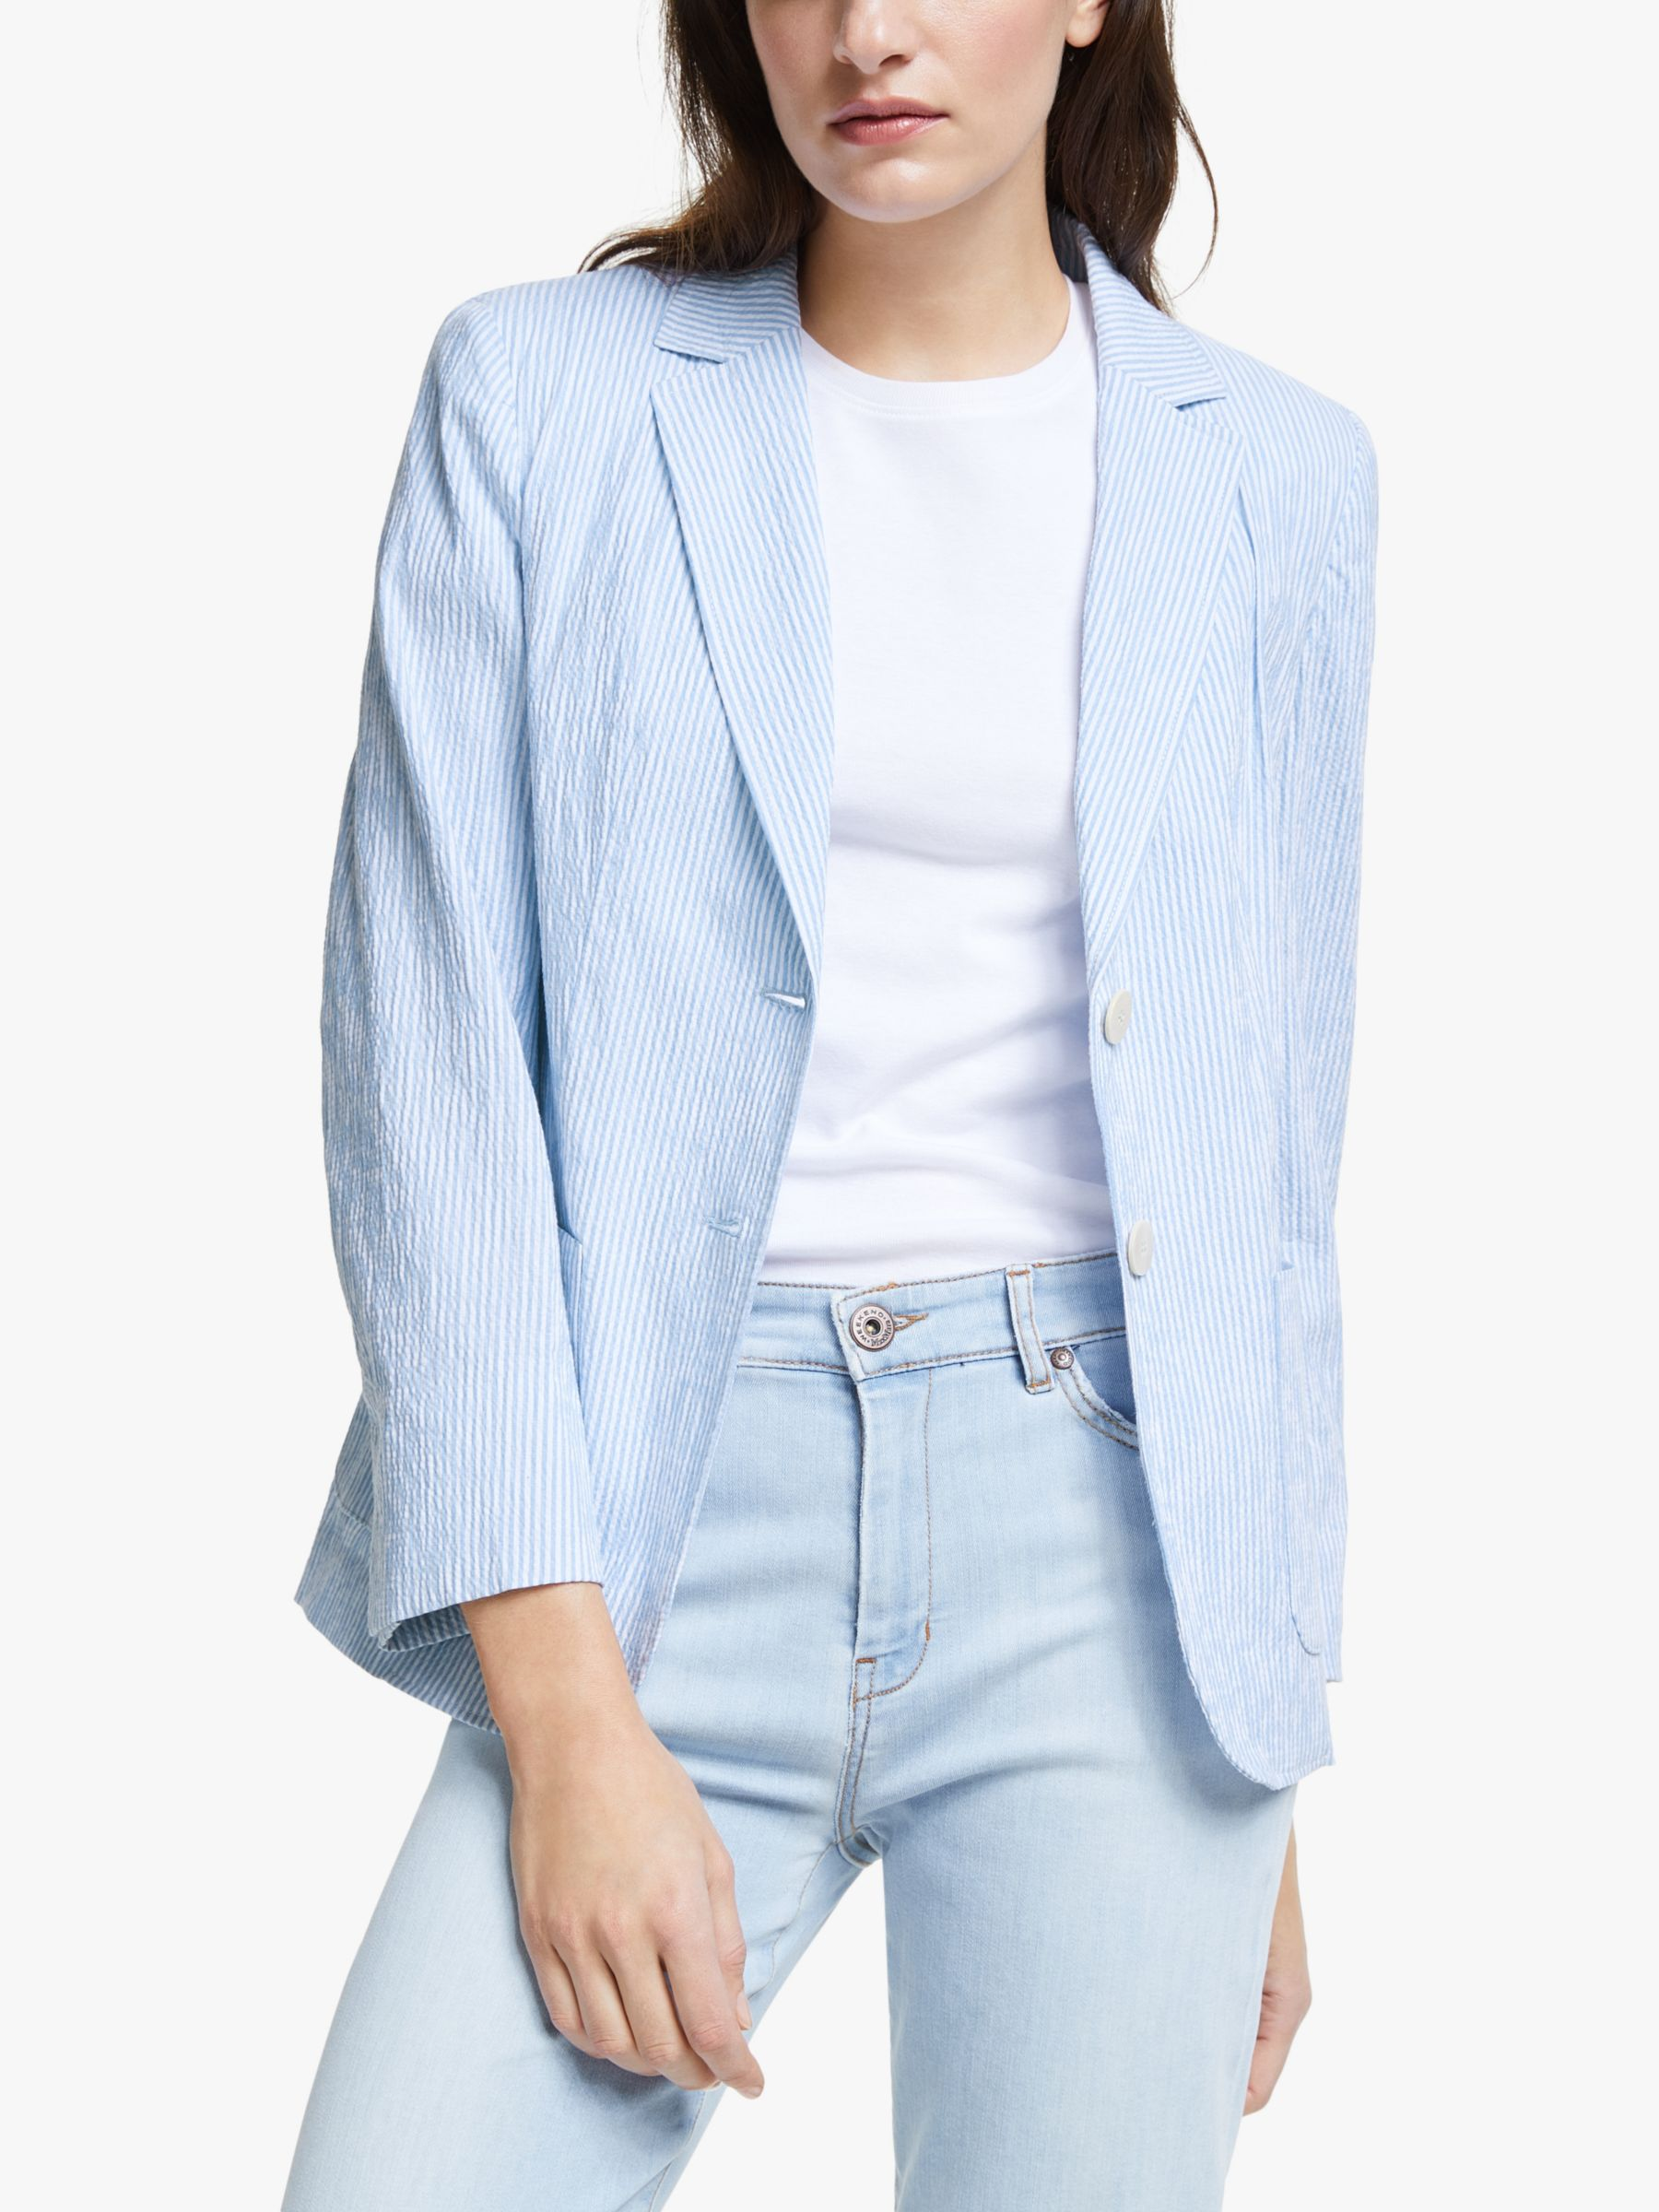 WEEKEND MaxMara Weekend MaxMara Giubilo Seersucker Jacket, Light Blue